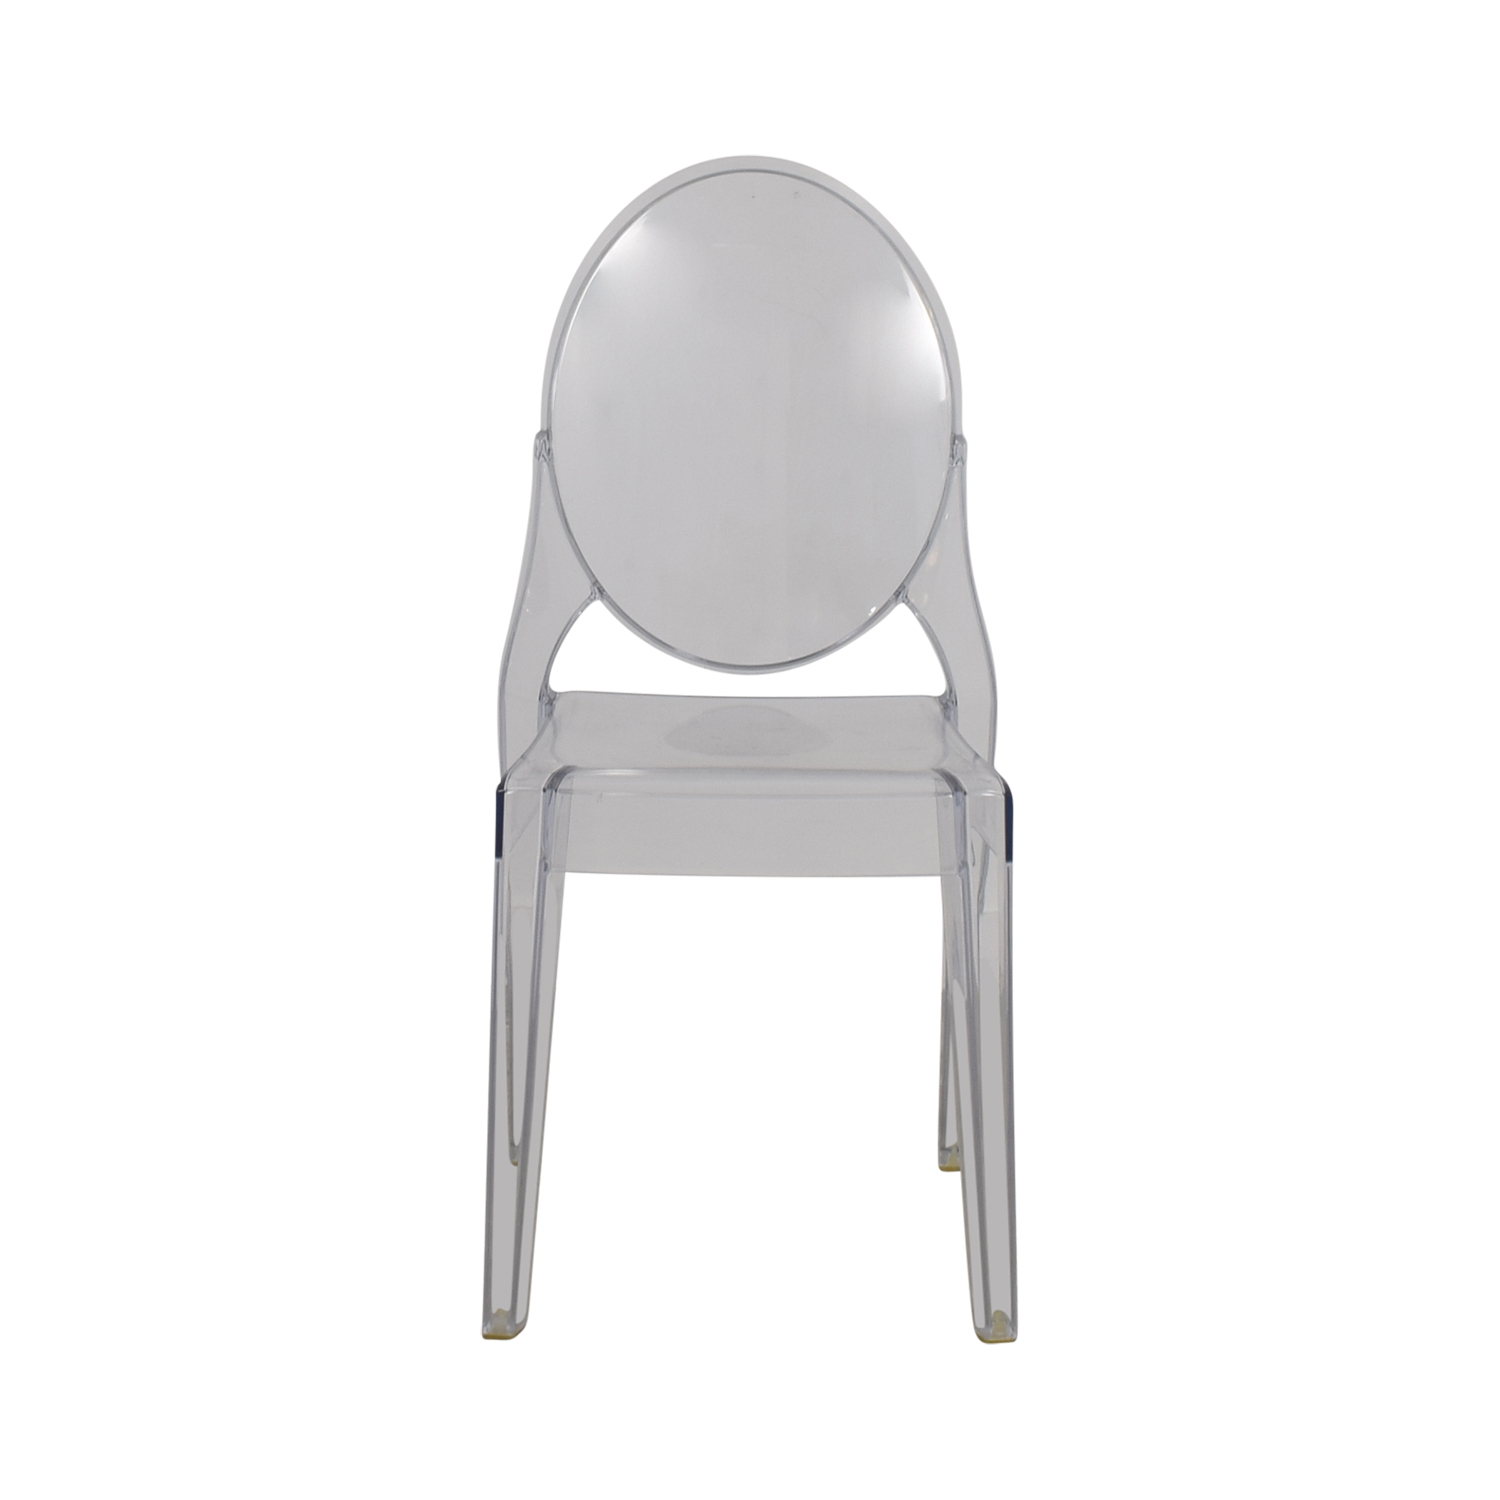 90 Off Abc Home Abc Home Kartell Victoria Ghost Chair Chairs